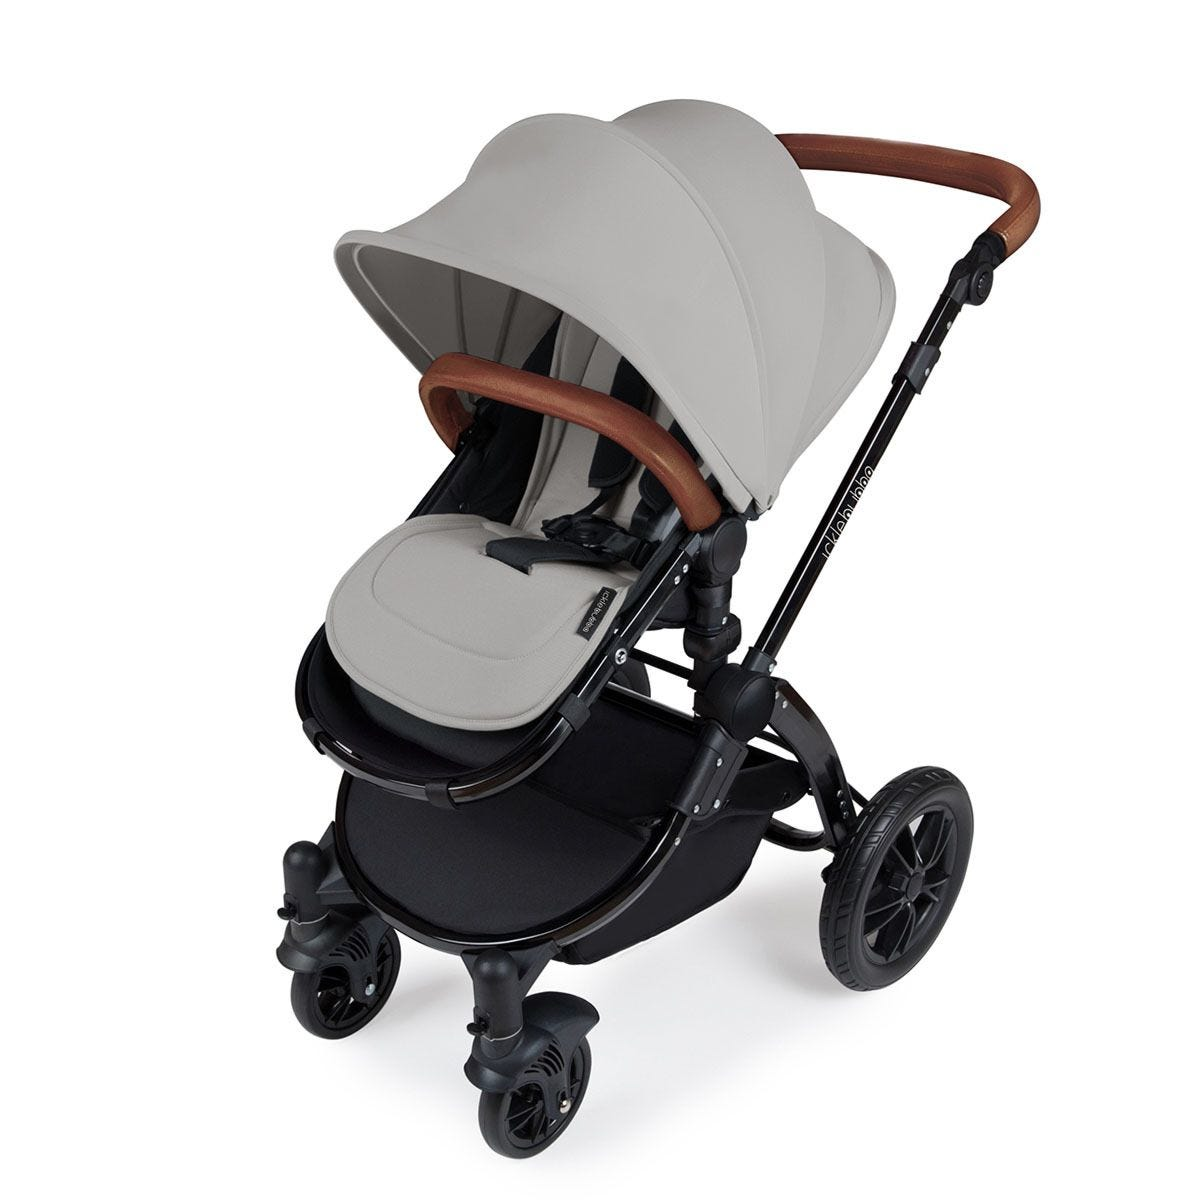 Ickle Bubba Stomp V3 All in One Travel System with Isofix Base - Silver on Black with Tan Handles